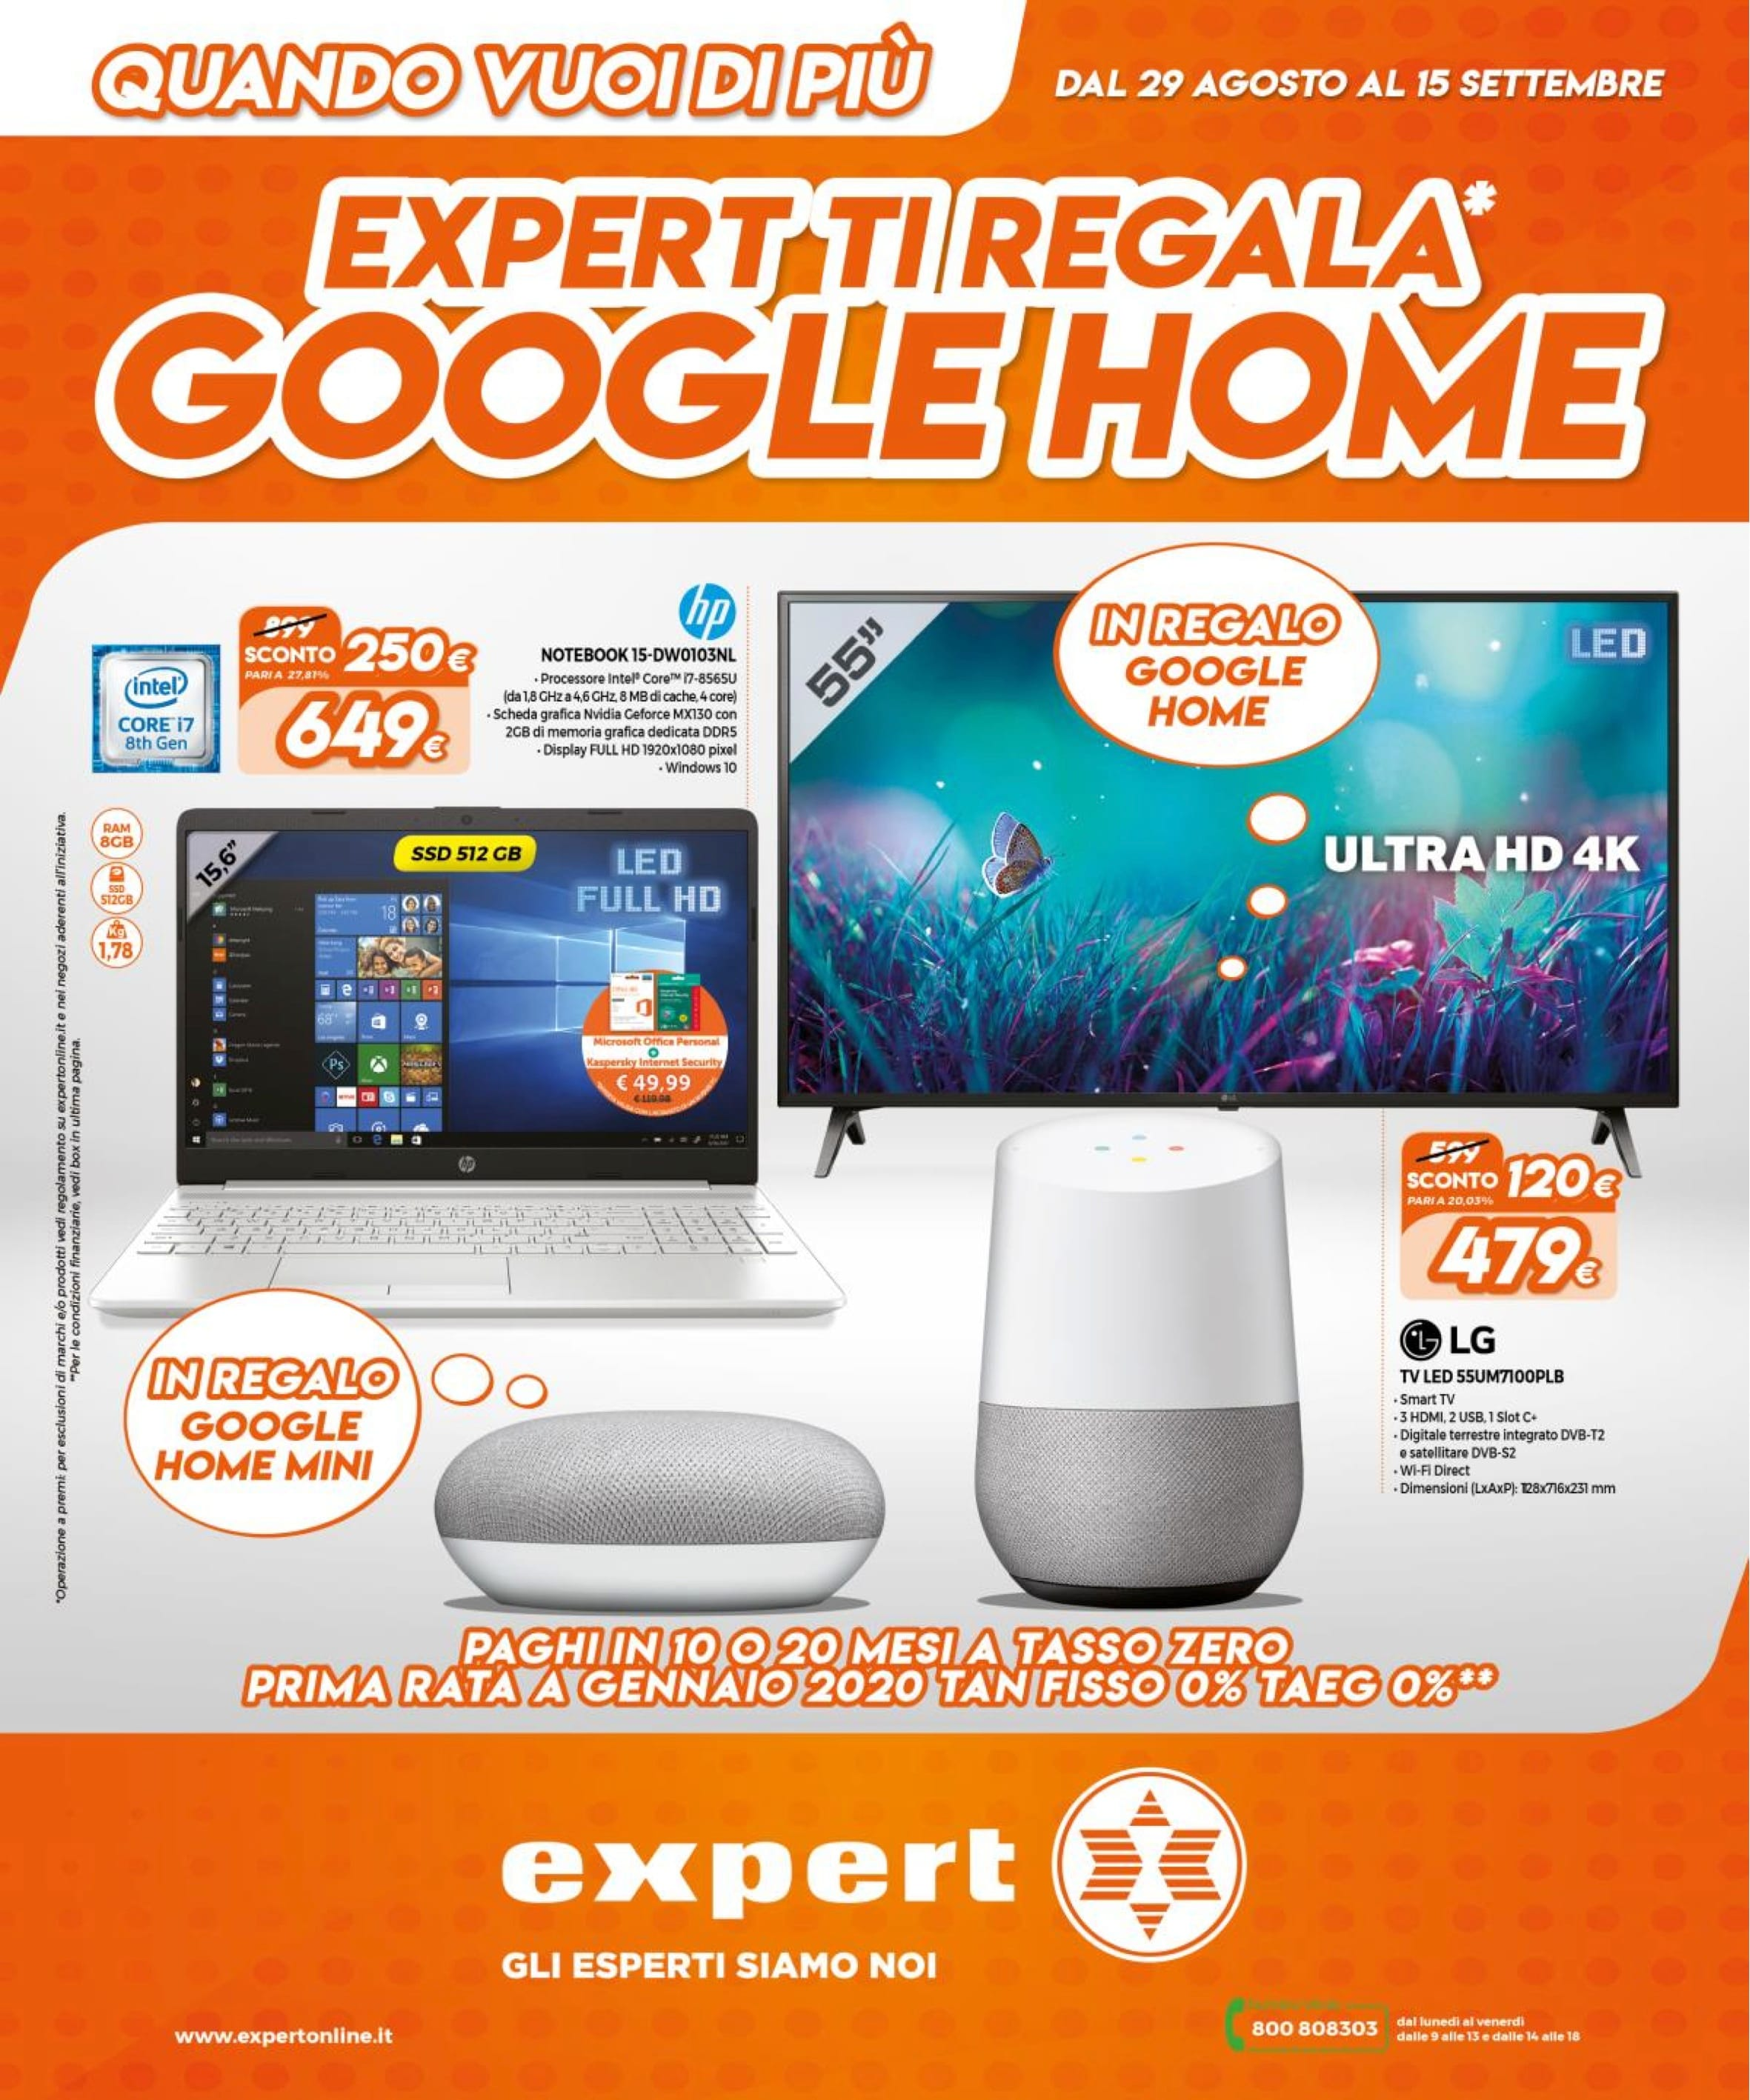 Volantino Expert ti regala Google Home 29 ago – 15 set 2019 -01